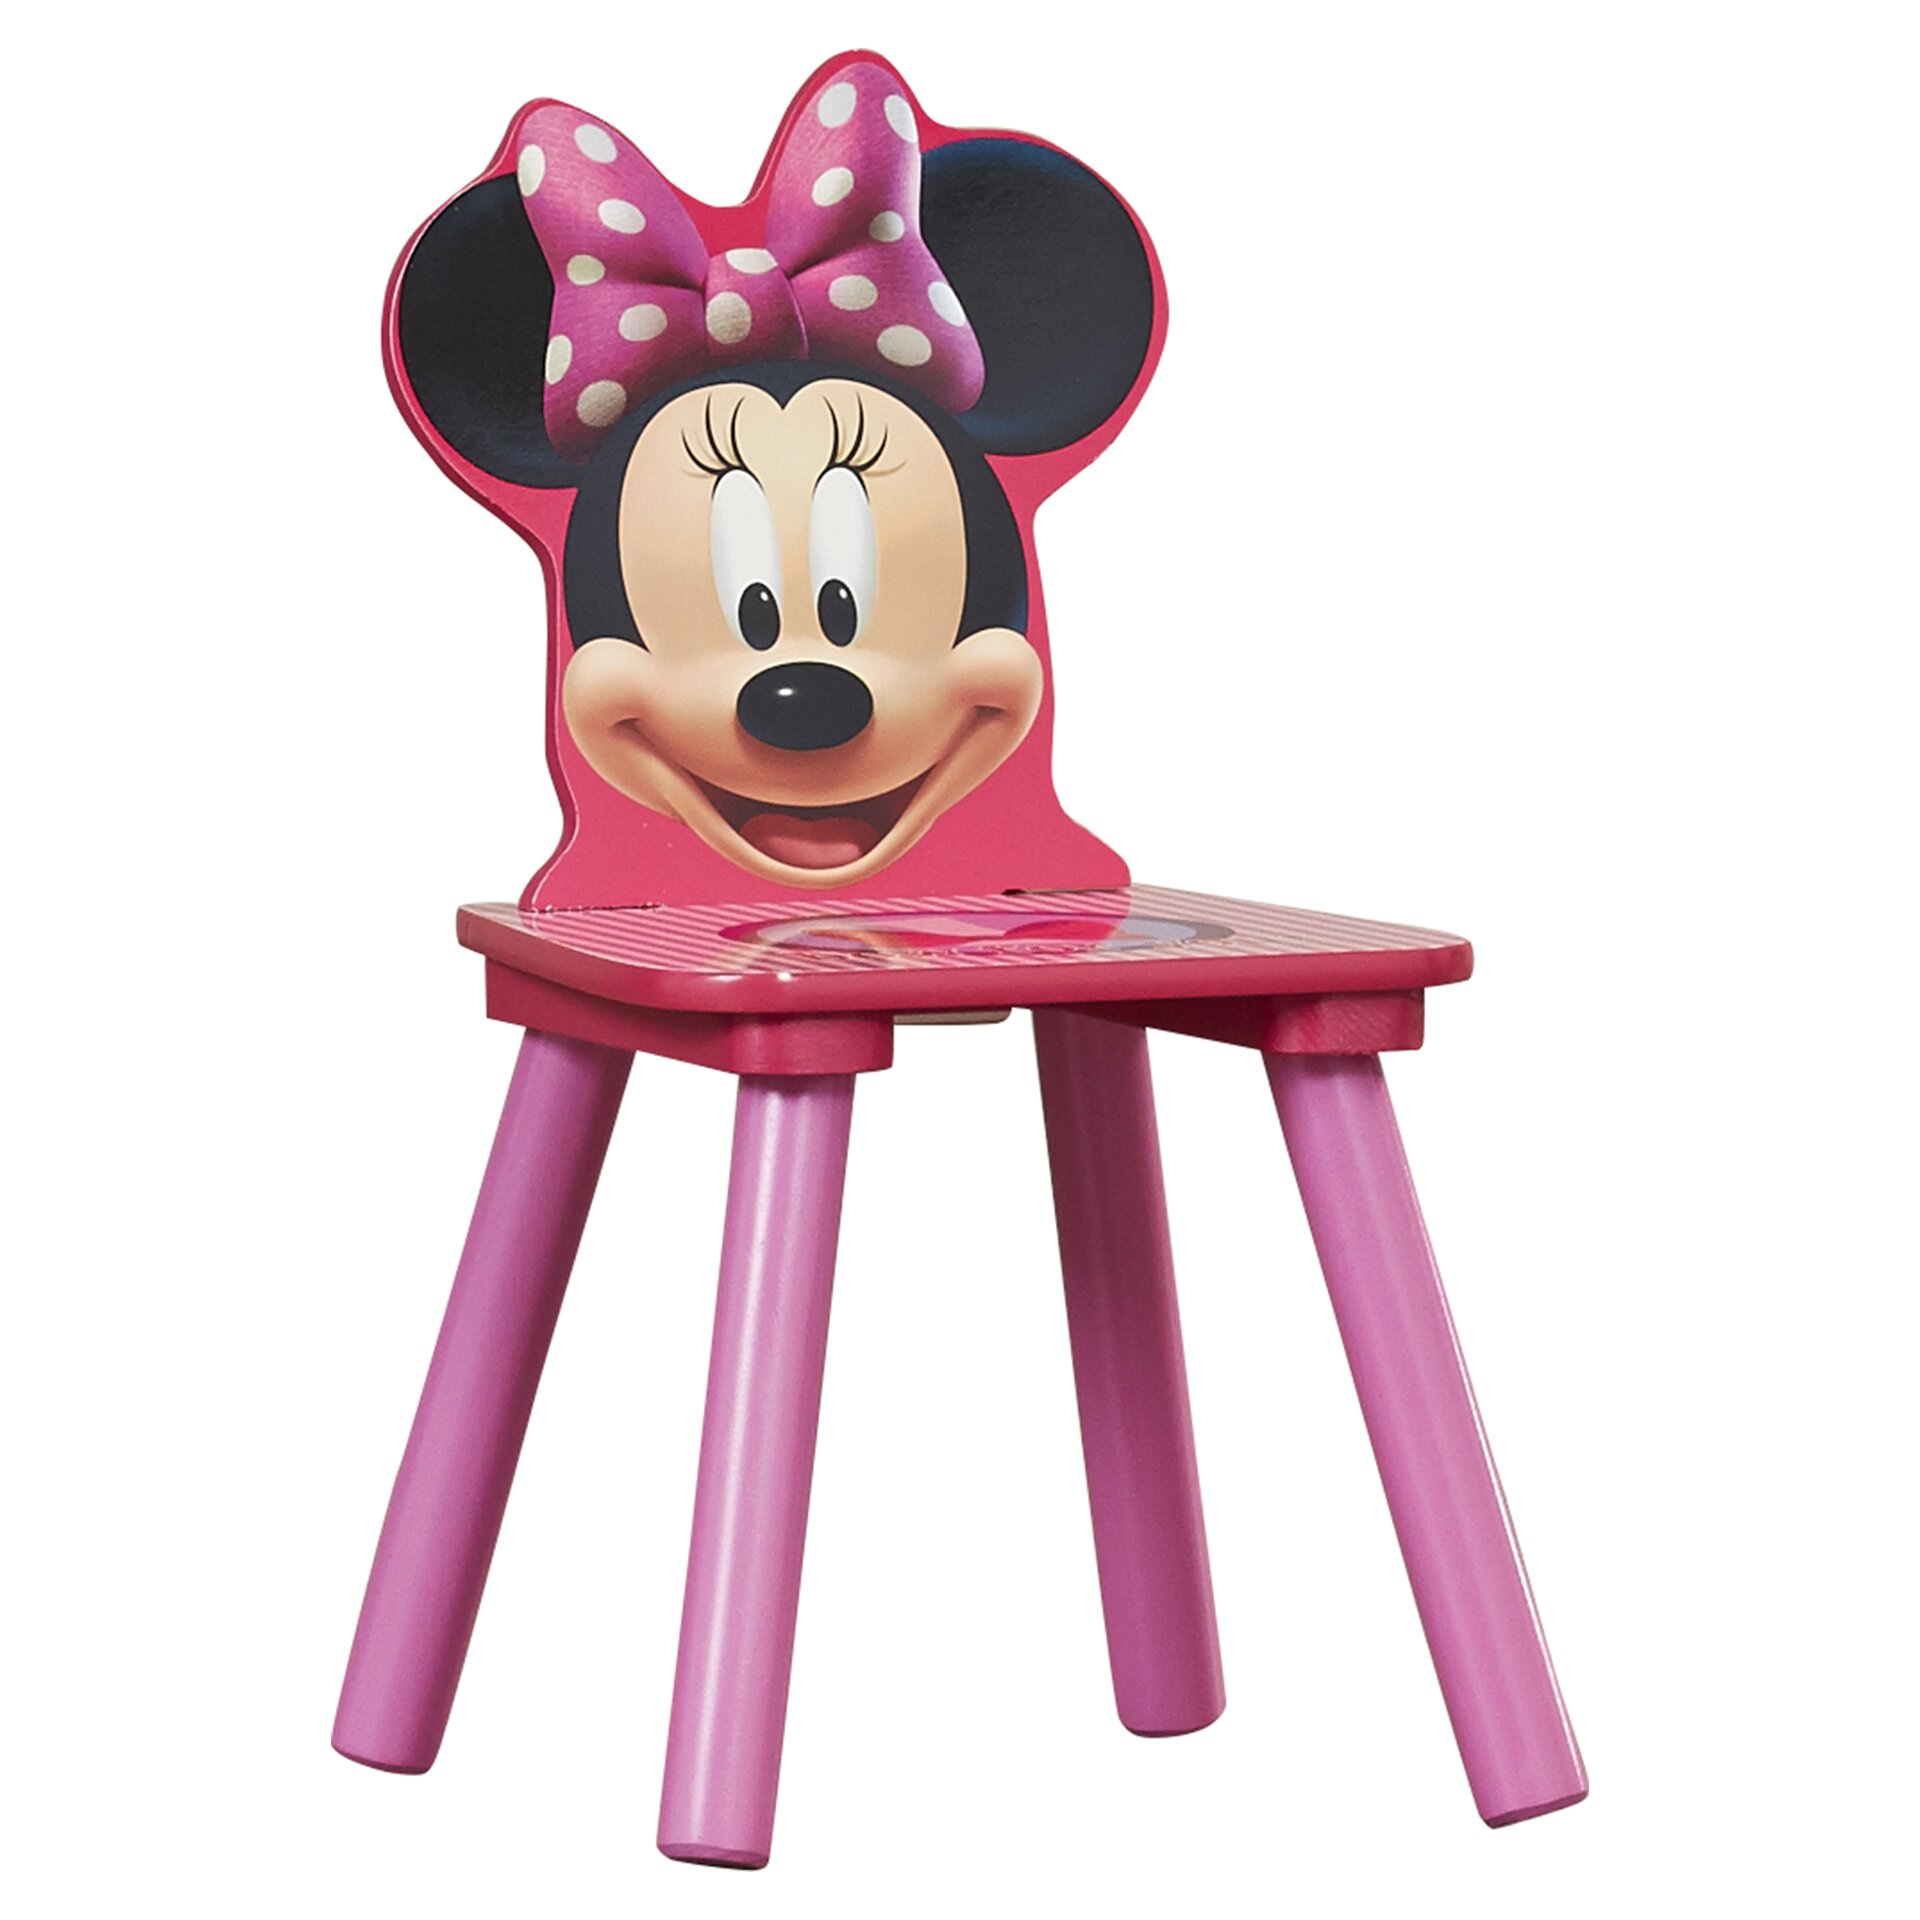 Unique Minnie Mouse Chair For Kids Room Vision